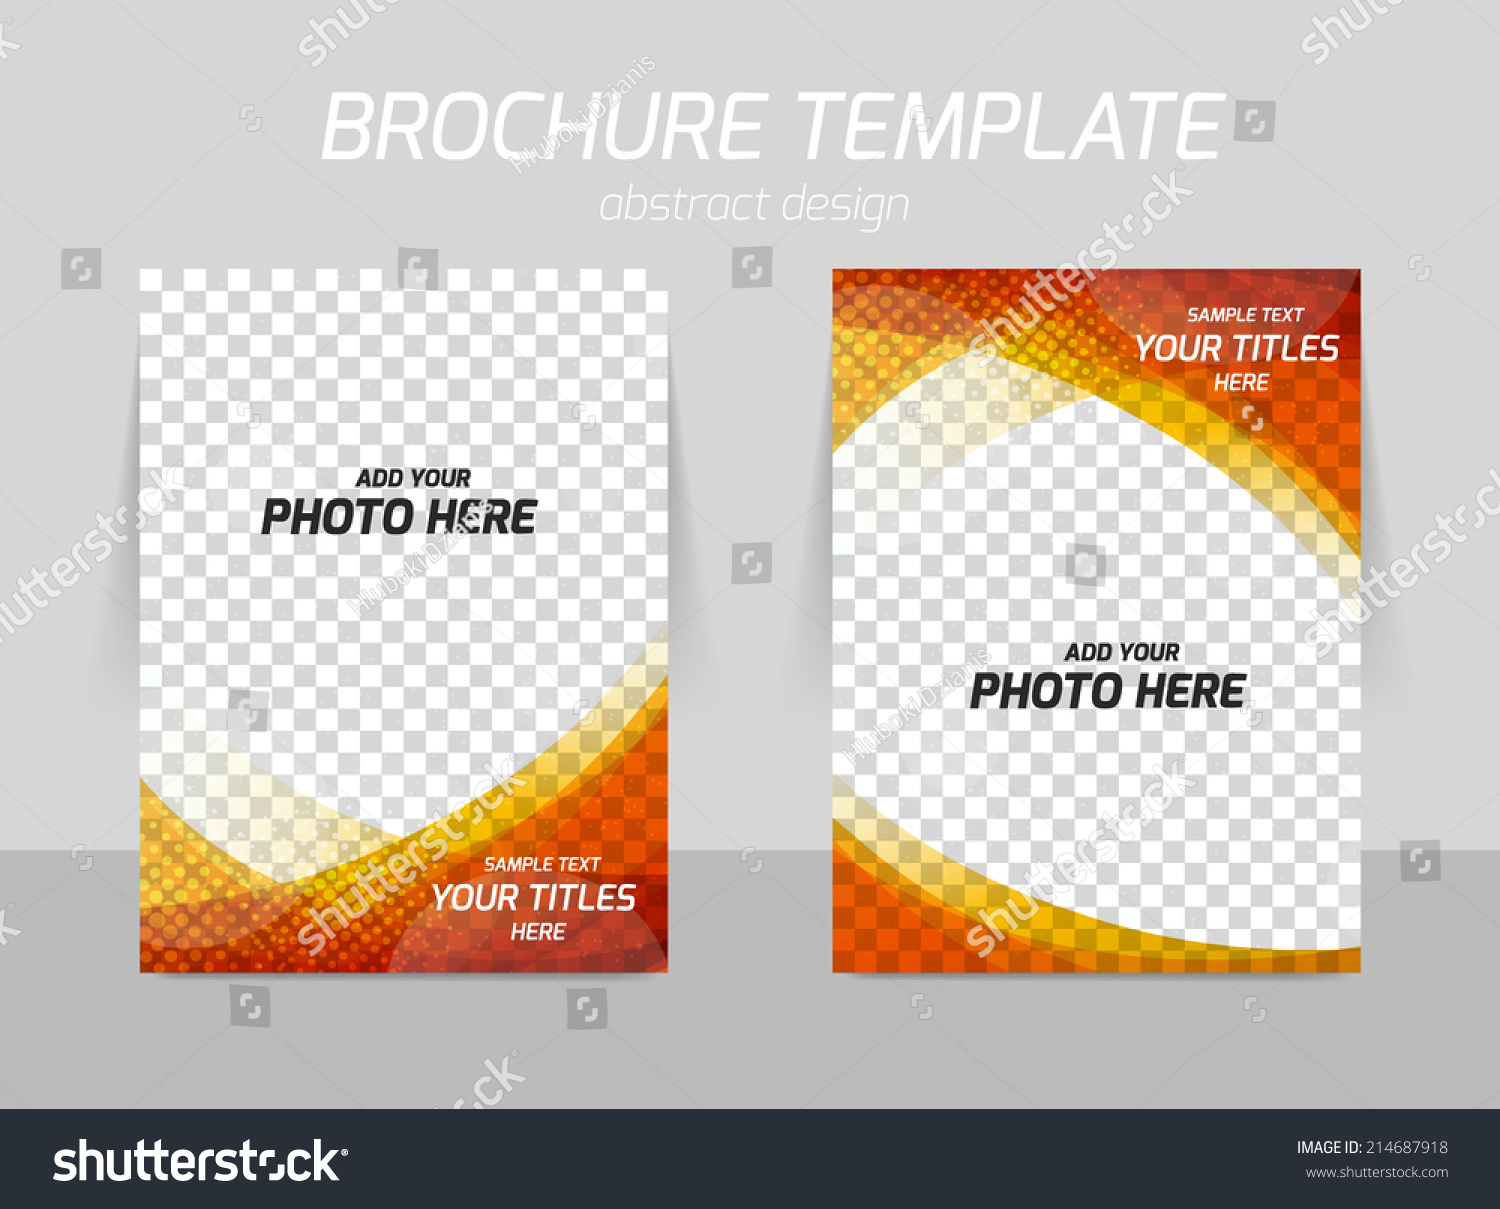 flyer template back front design red stock vector  flyer template back and front design in red and orange colors